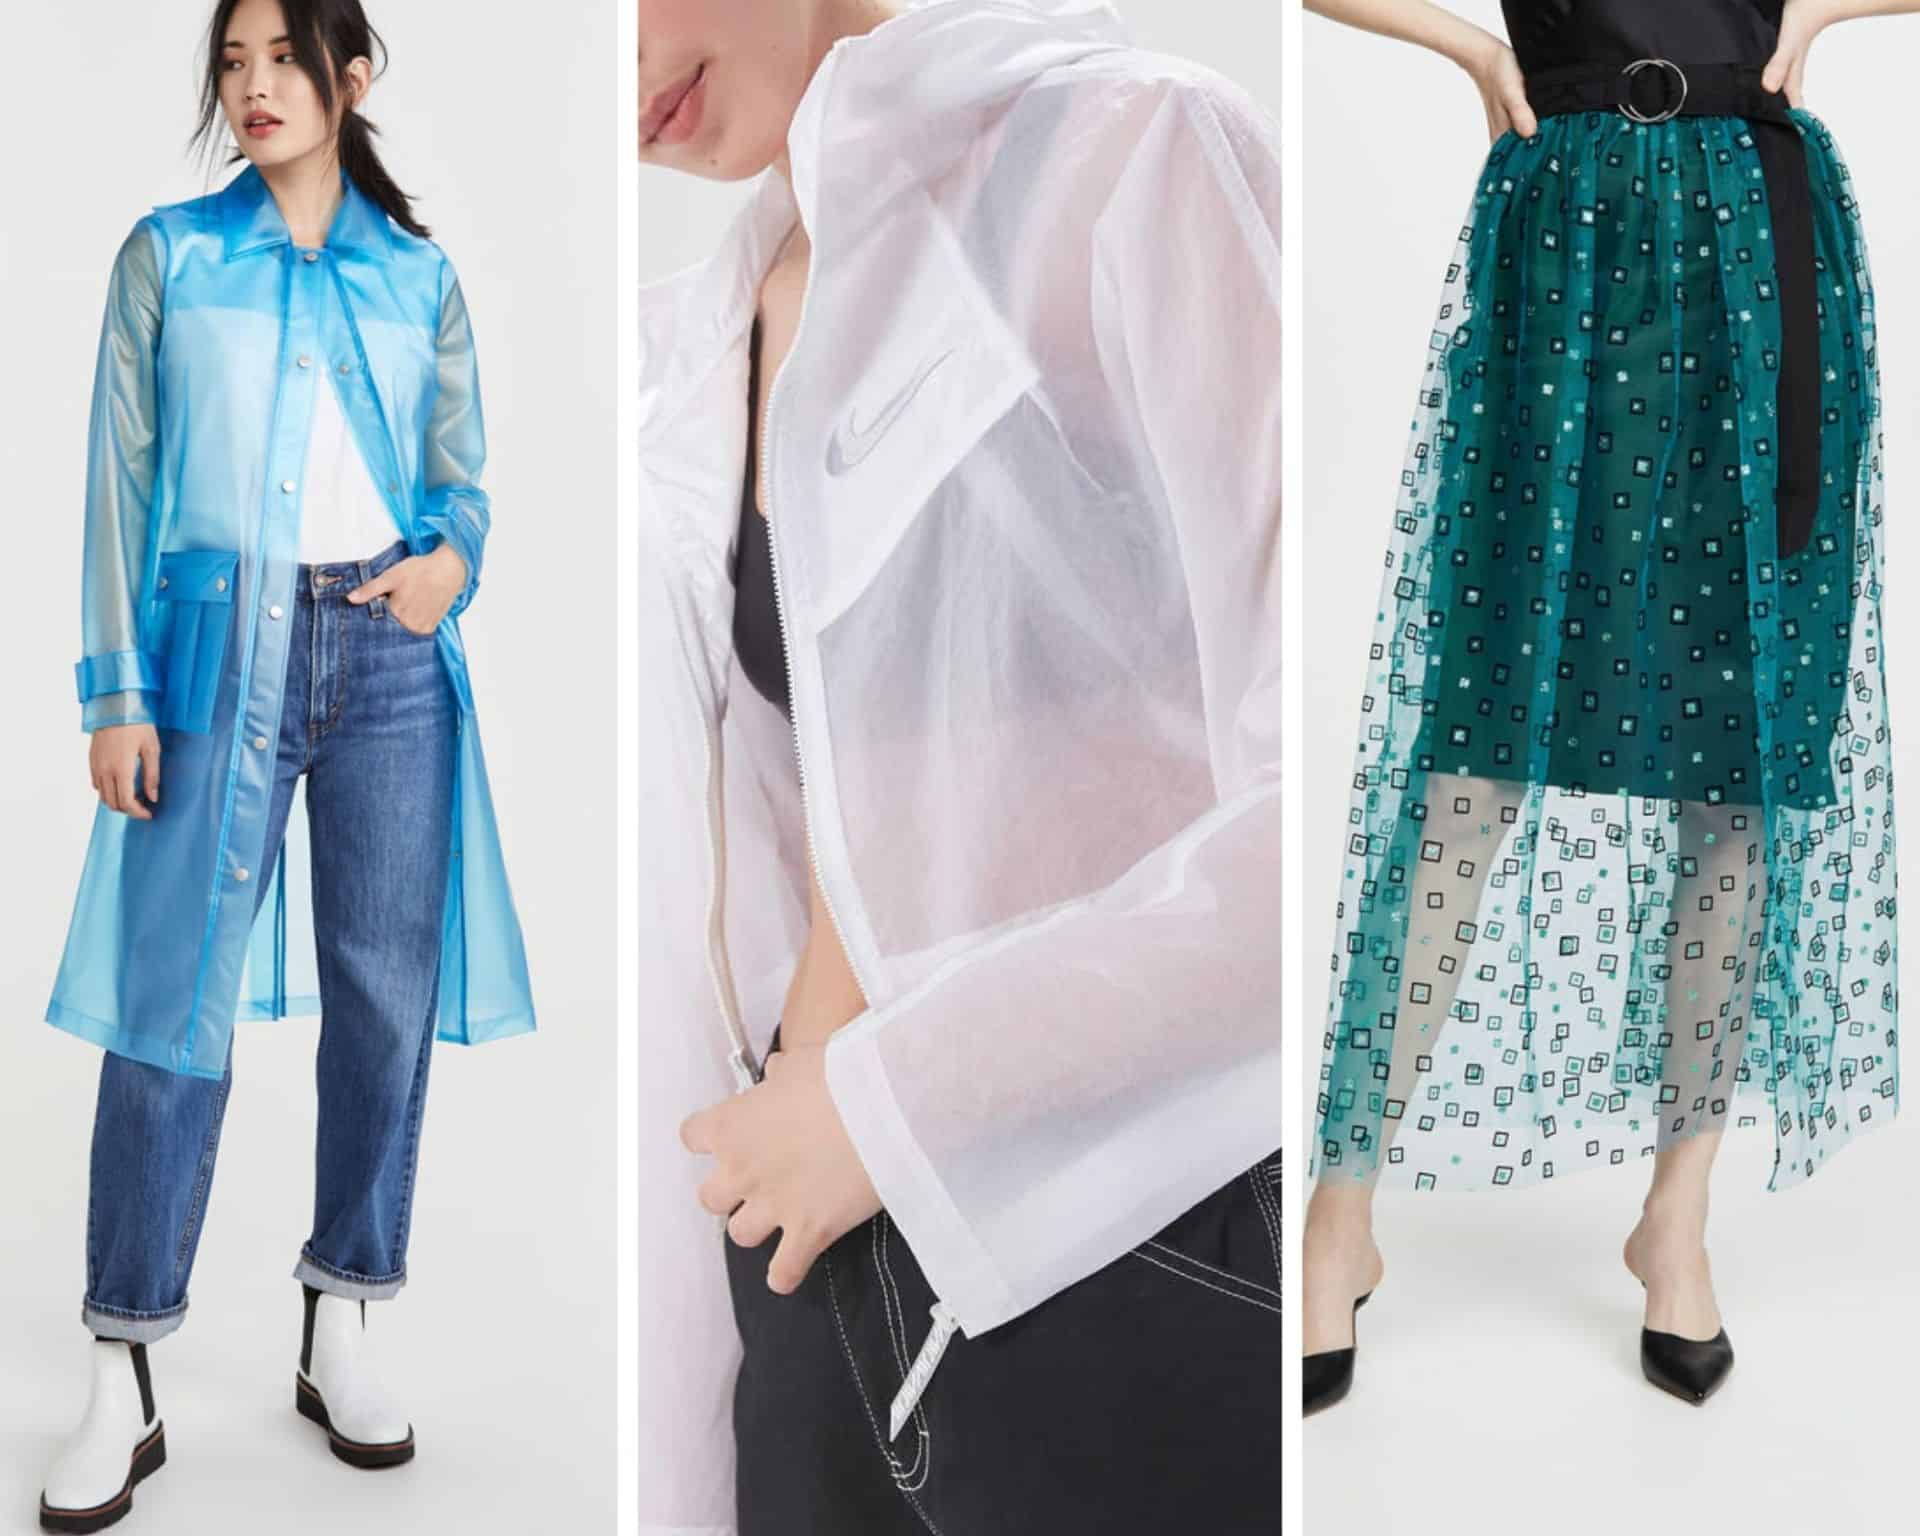 Fashion A to Z: X for X-Ray aka The Translucent Trend